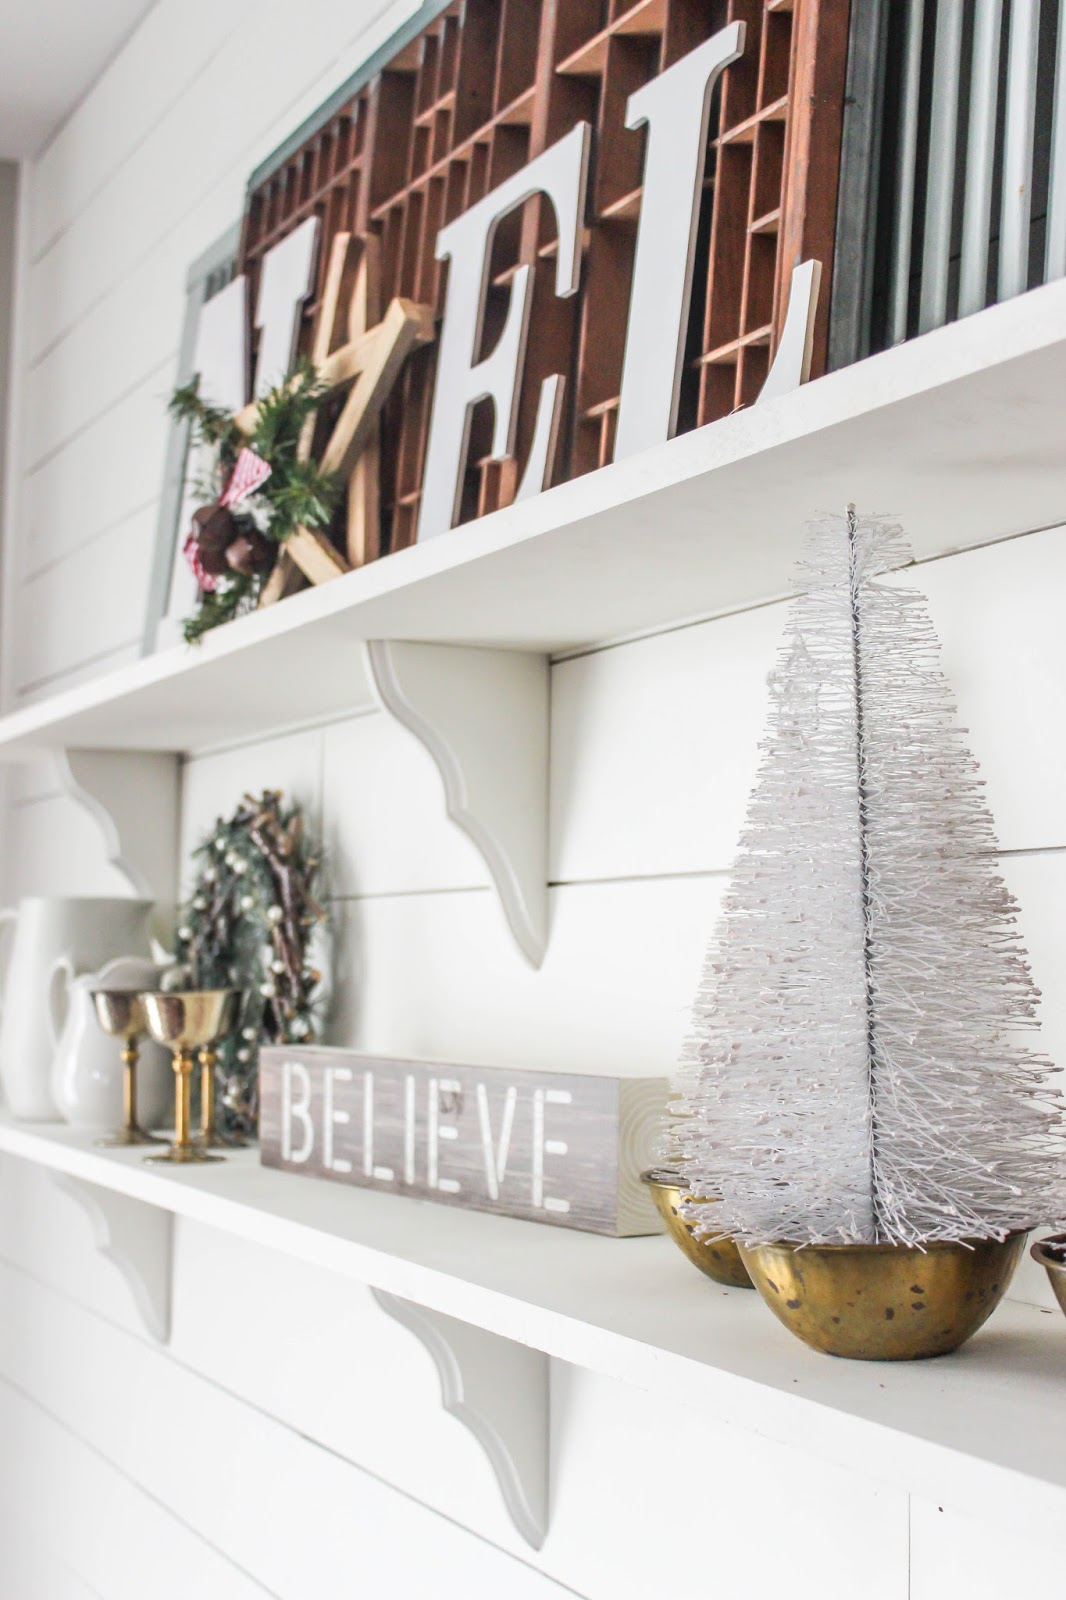 ideas for decorating a shelf for christmas